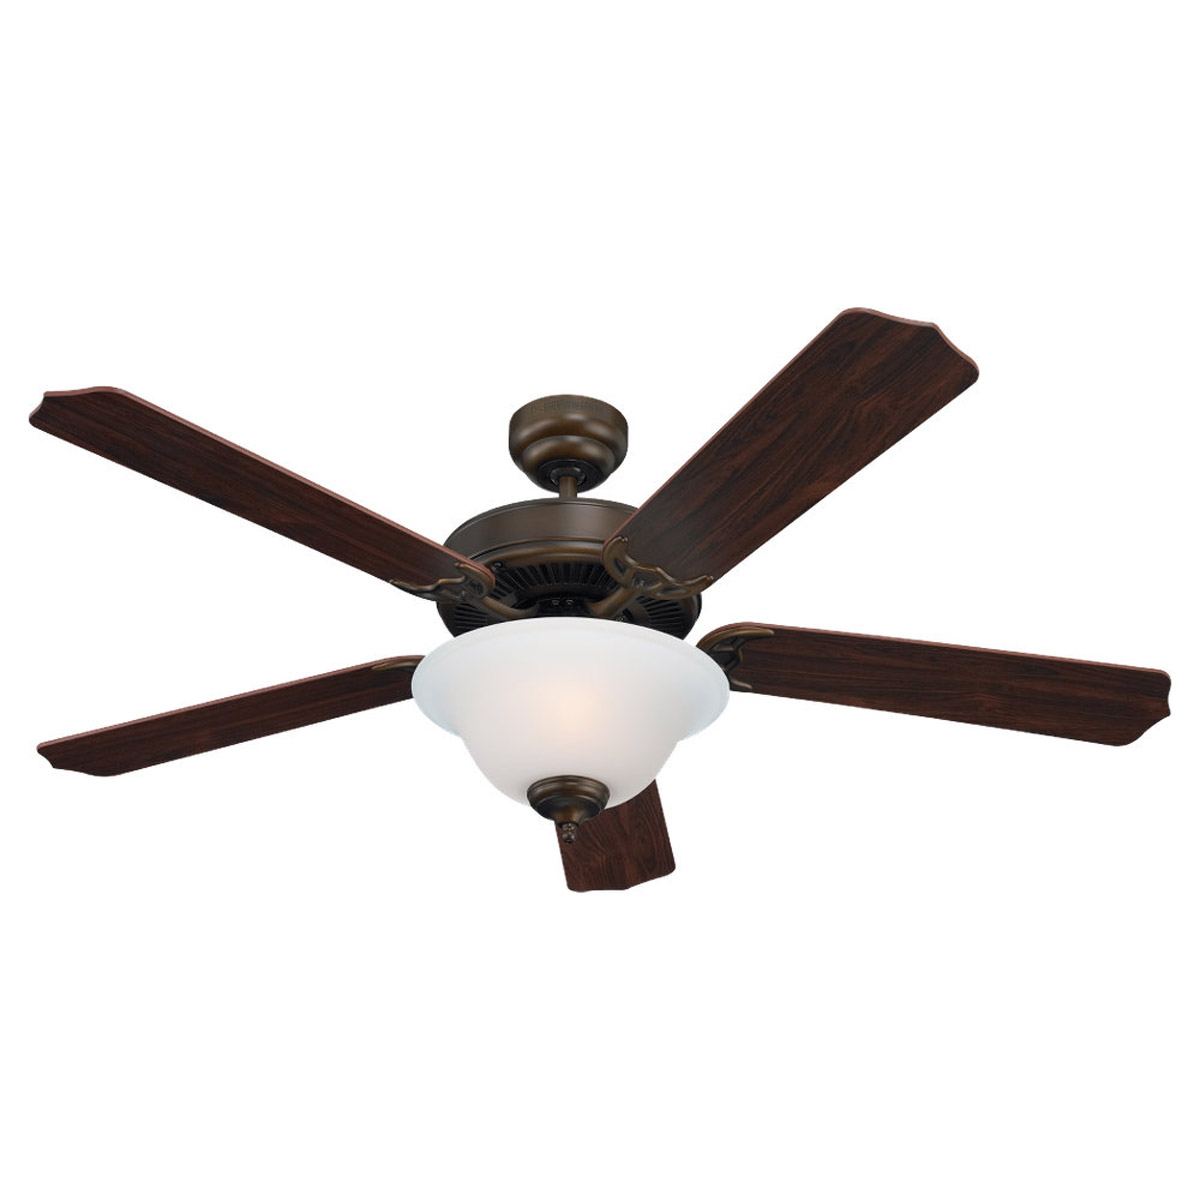 Sea Gull Lighting 2 Light 52in Quality Max Plus Ceiling Fan in Russet Bronze 15030BLE-829